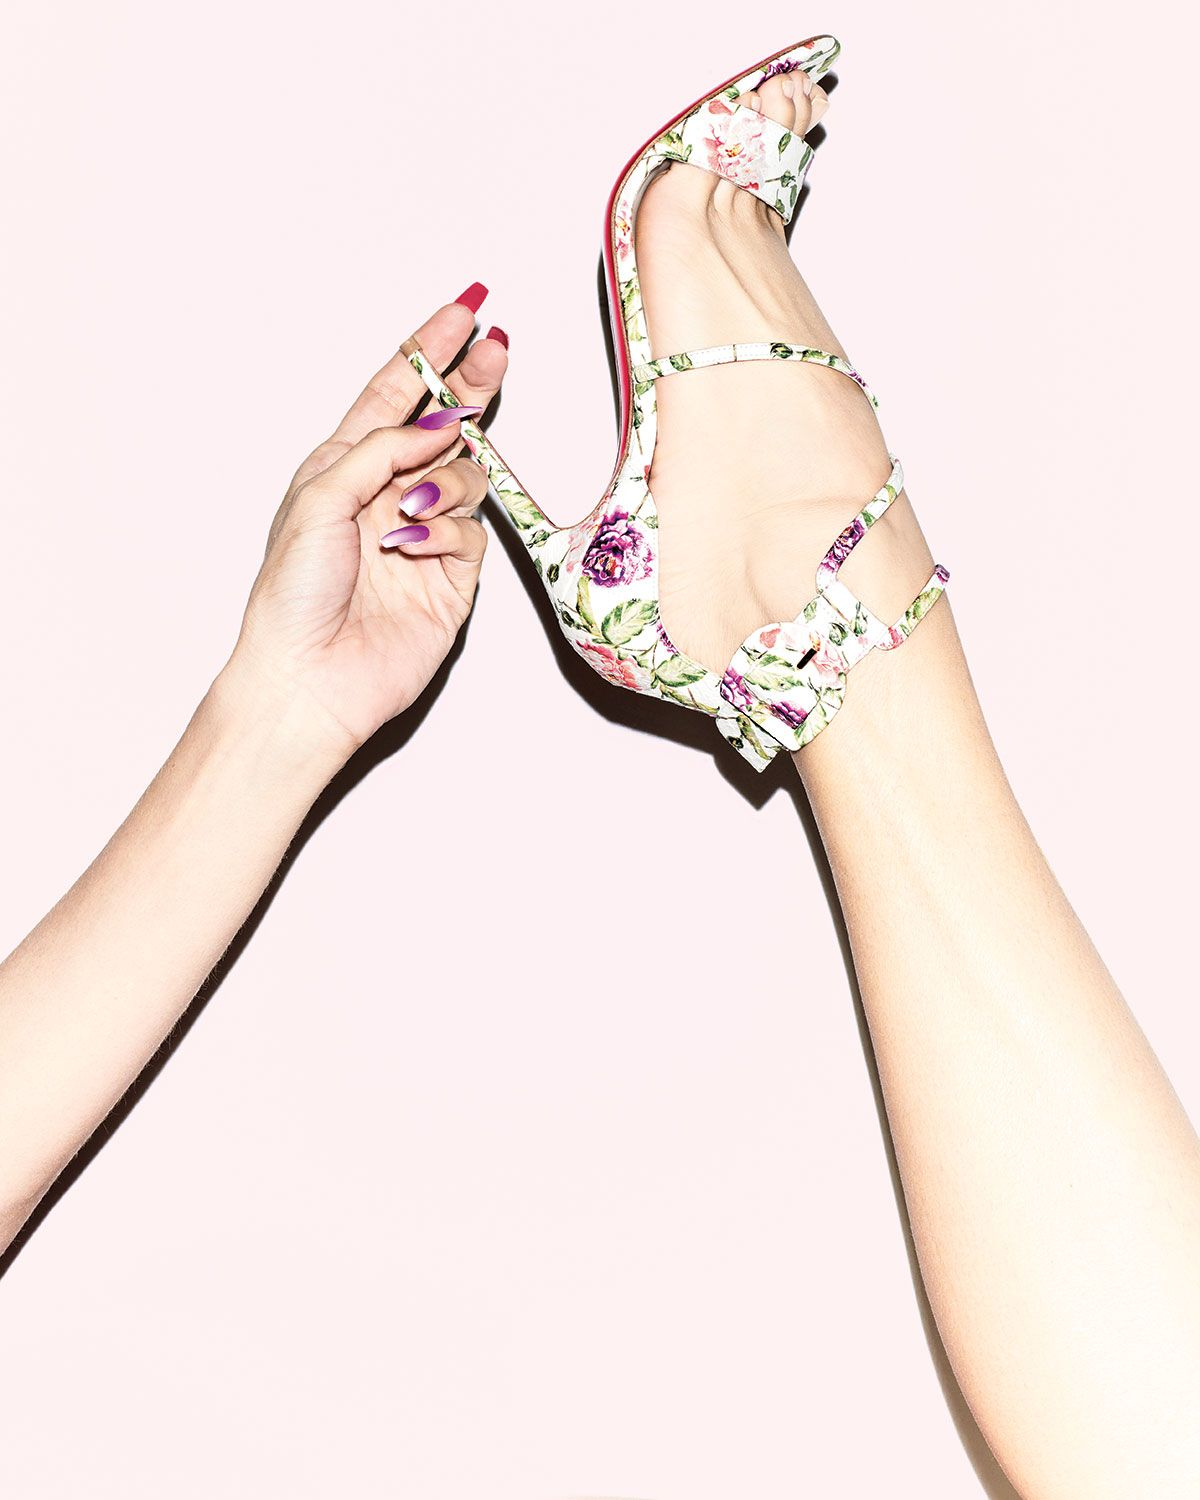 db0082b270 We love floral prints for spring, so this Christian Louboutin Choca Floral  Snake Red Sole